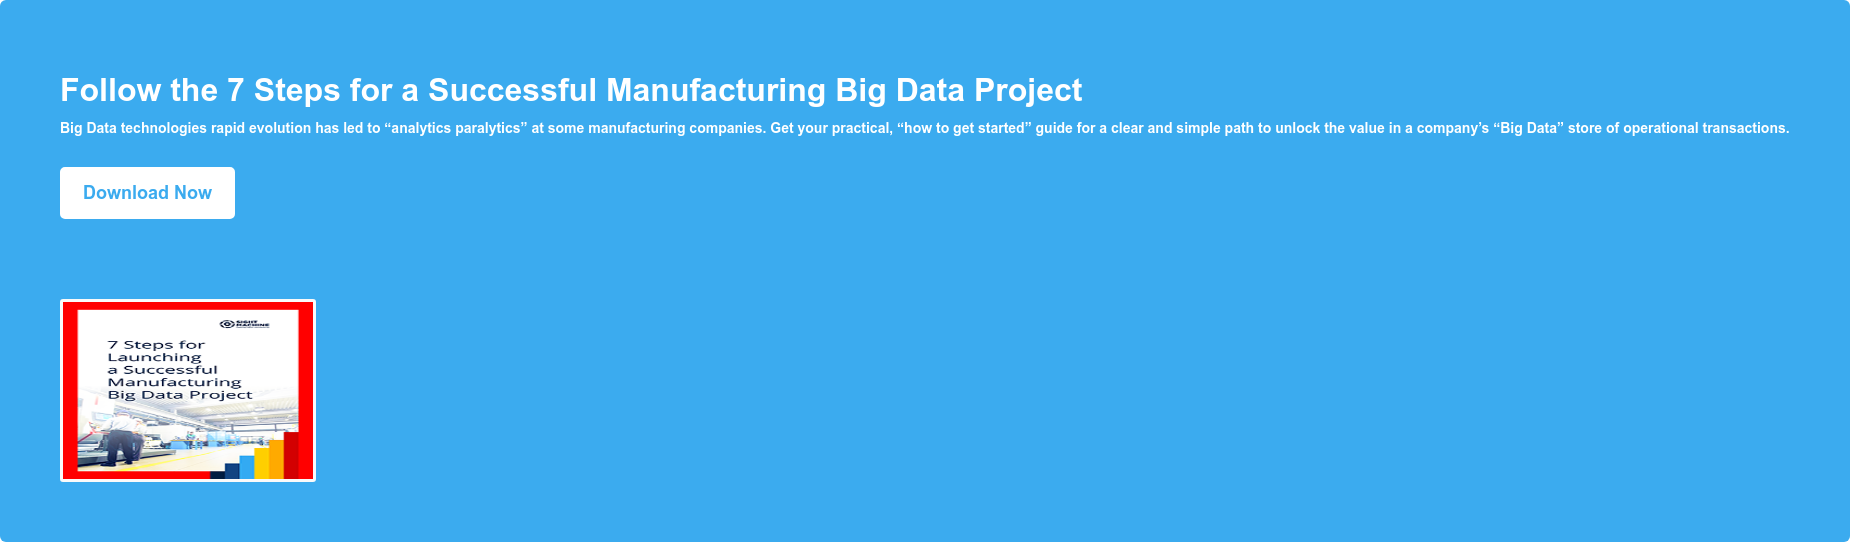 "Follow the 7 Steps for a Successful Manufacturing Big Data Project Big Data  technologies rapid evolution has led to ""analytics paralytics"" at some  manufacturing companies. Get your practical, ""how to get started"" guide for a  clear and simple path to unlock the value in a company's ""Big Data"" store of  operational transactions. Download Now"